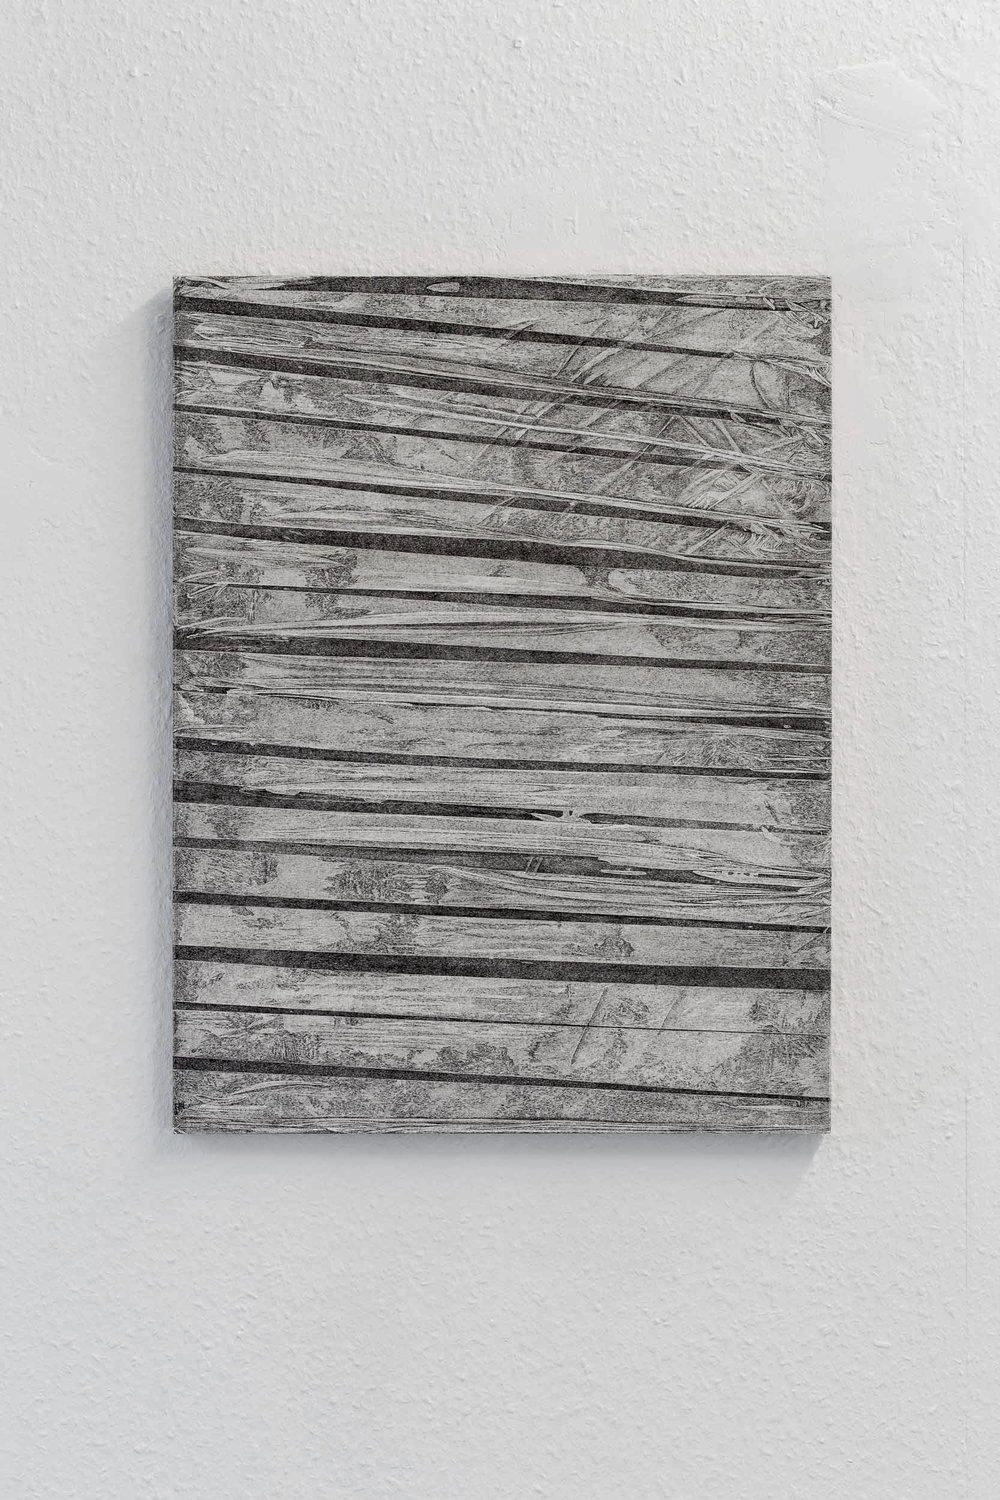 Kong Chun Hei,  Stripes , 2017, Ink on paper mounted on aluminium board and wooden frame, 47.1 x 61.4 x 2cm